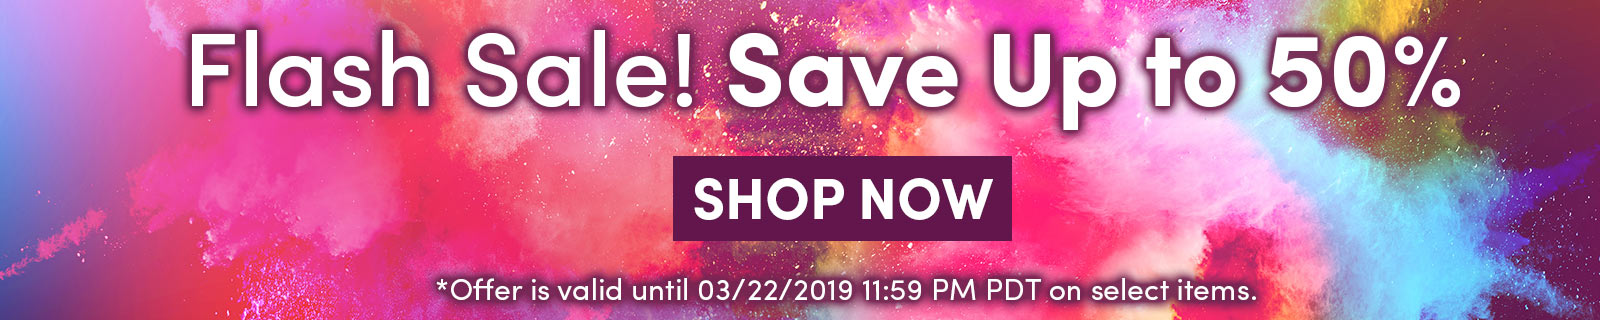 Flash Sale! Save Up to 50% SHOP NOW